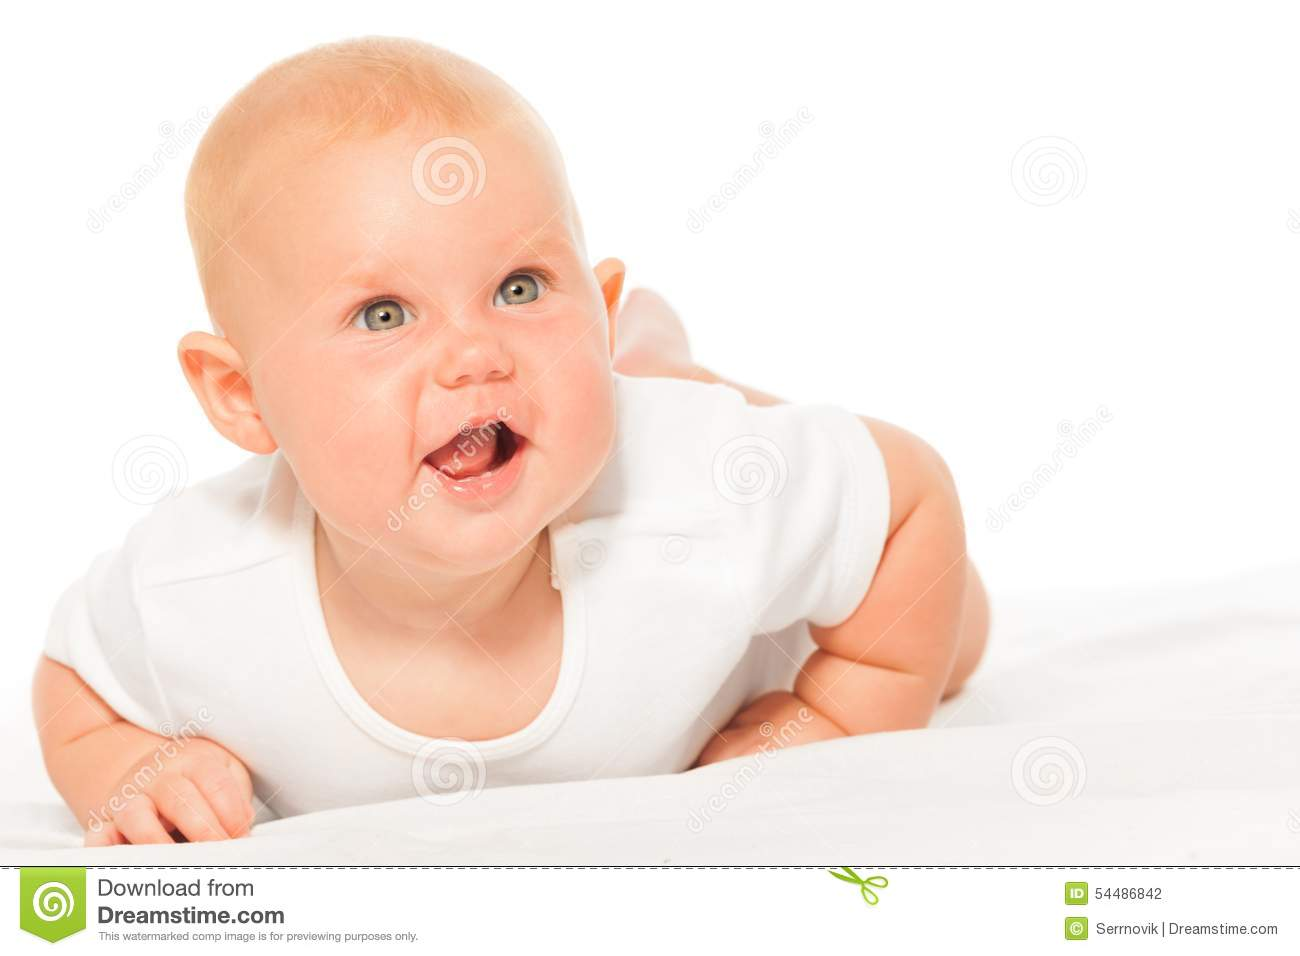 Chubby baby in bodysuit on white background crawls